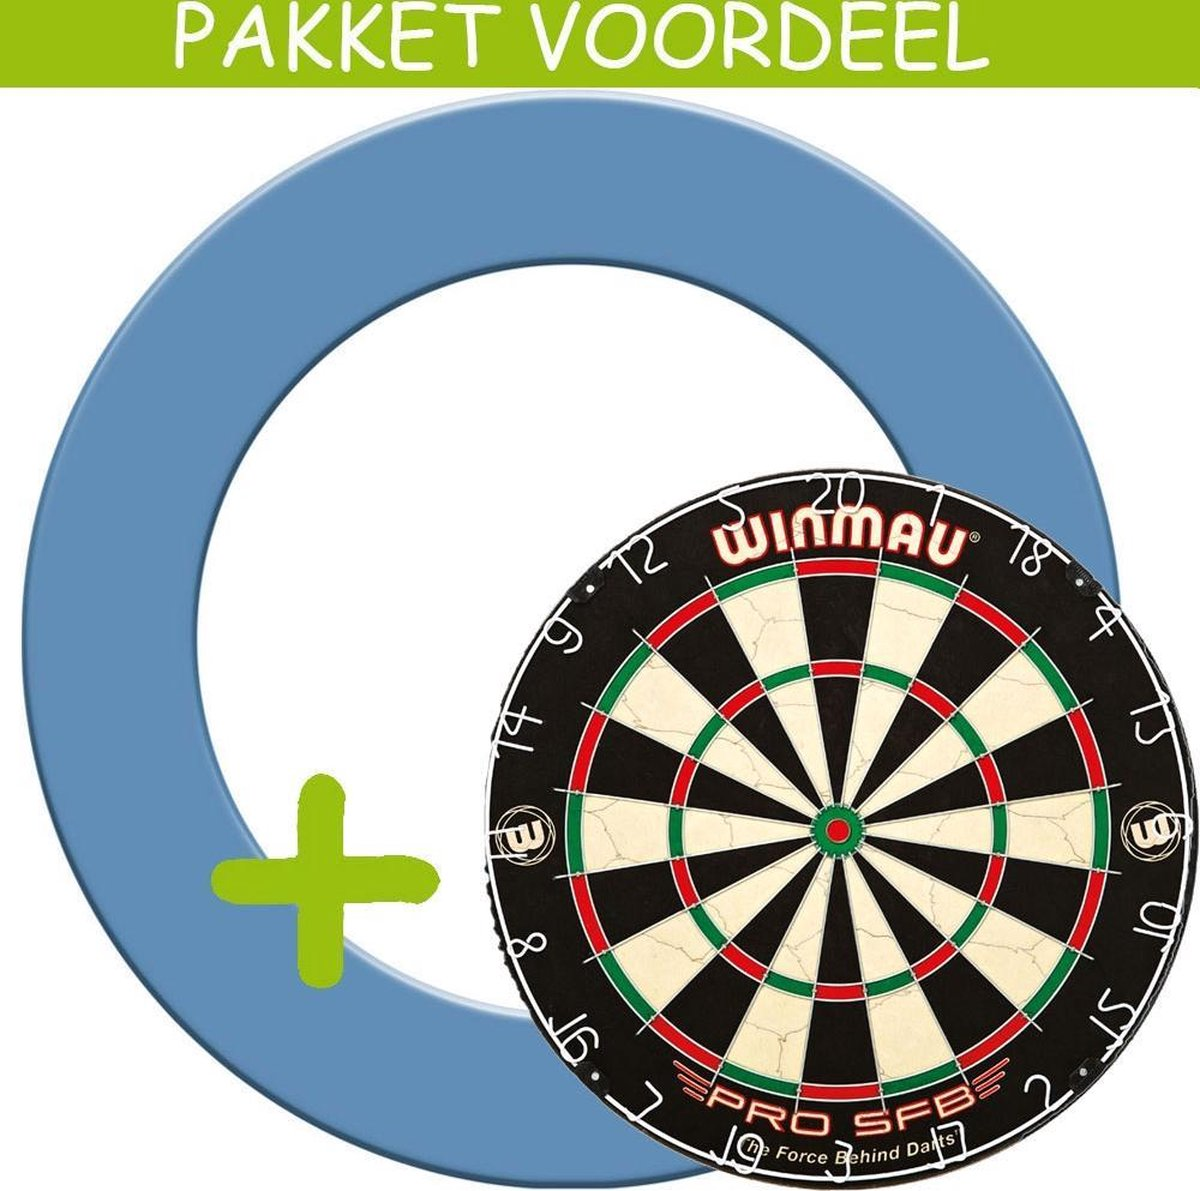 Dartbord Surround VoordeelPakket - Pro SFB - Rubberen Surround-- (Aqua)